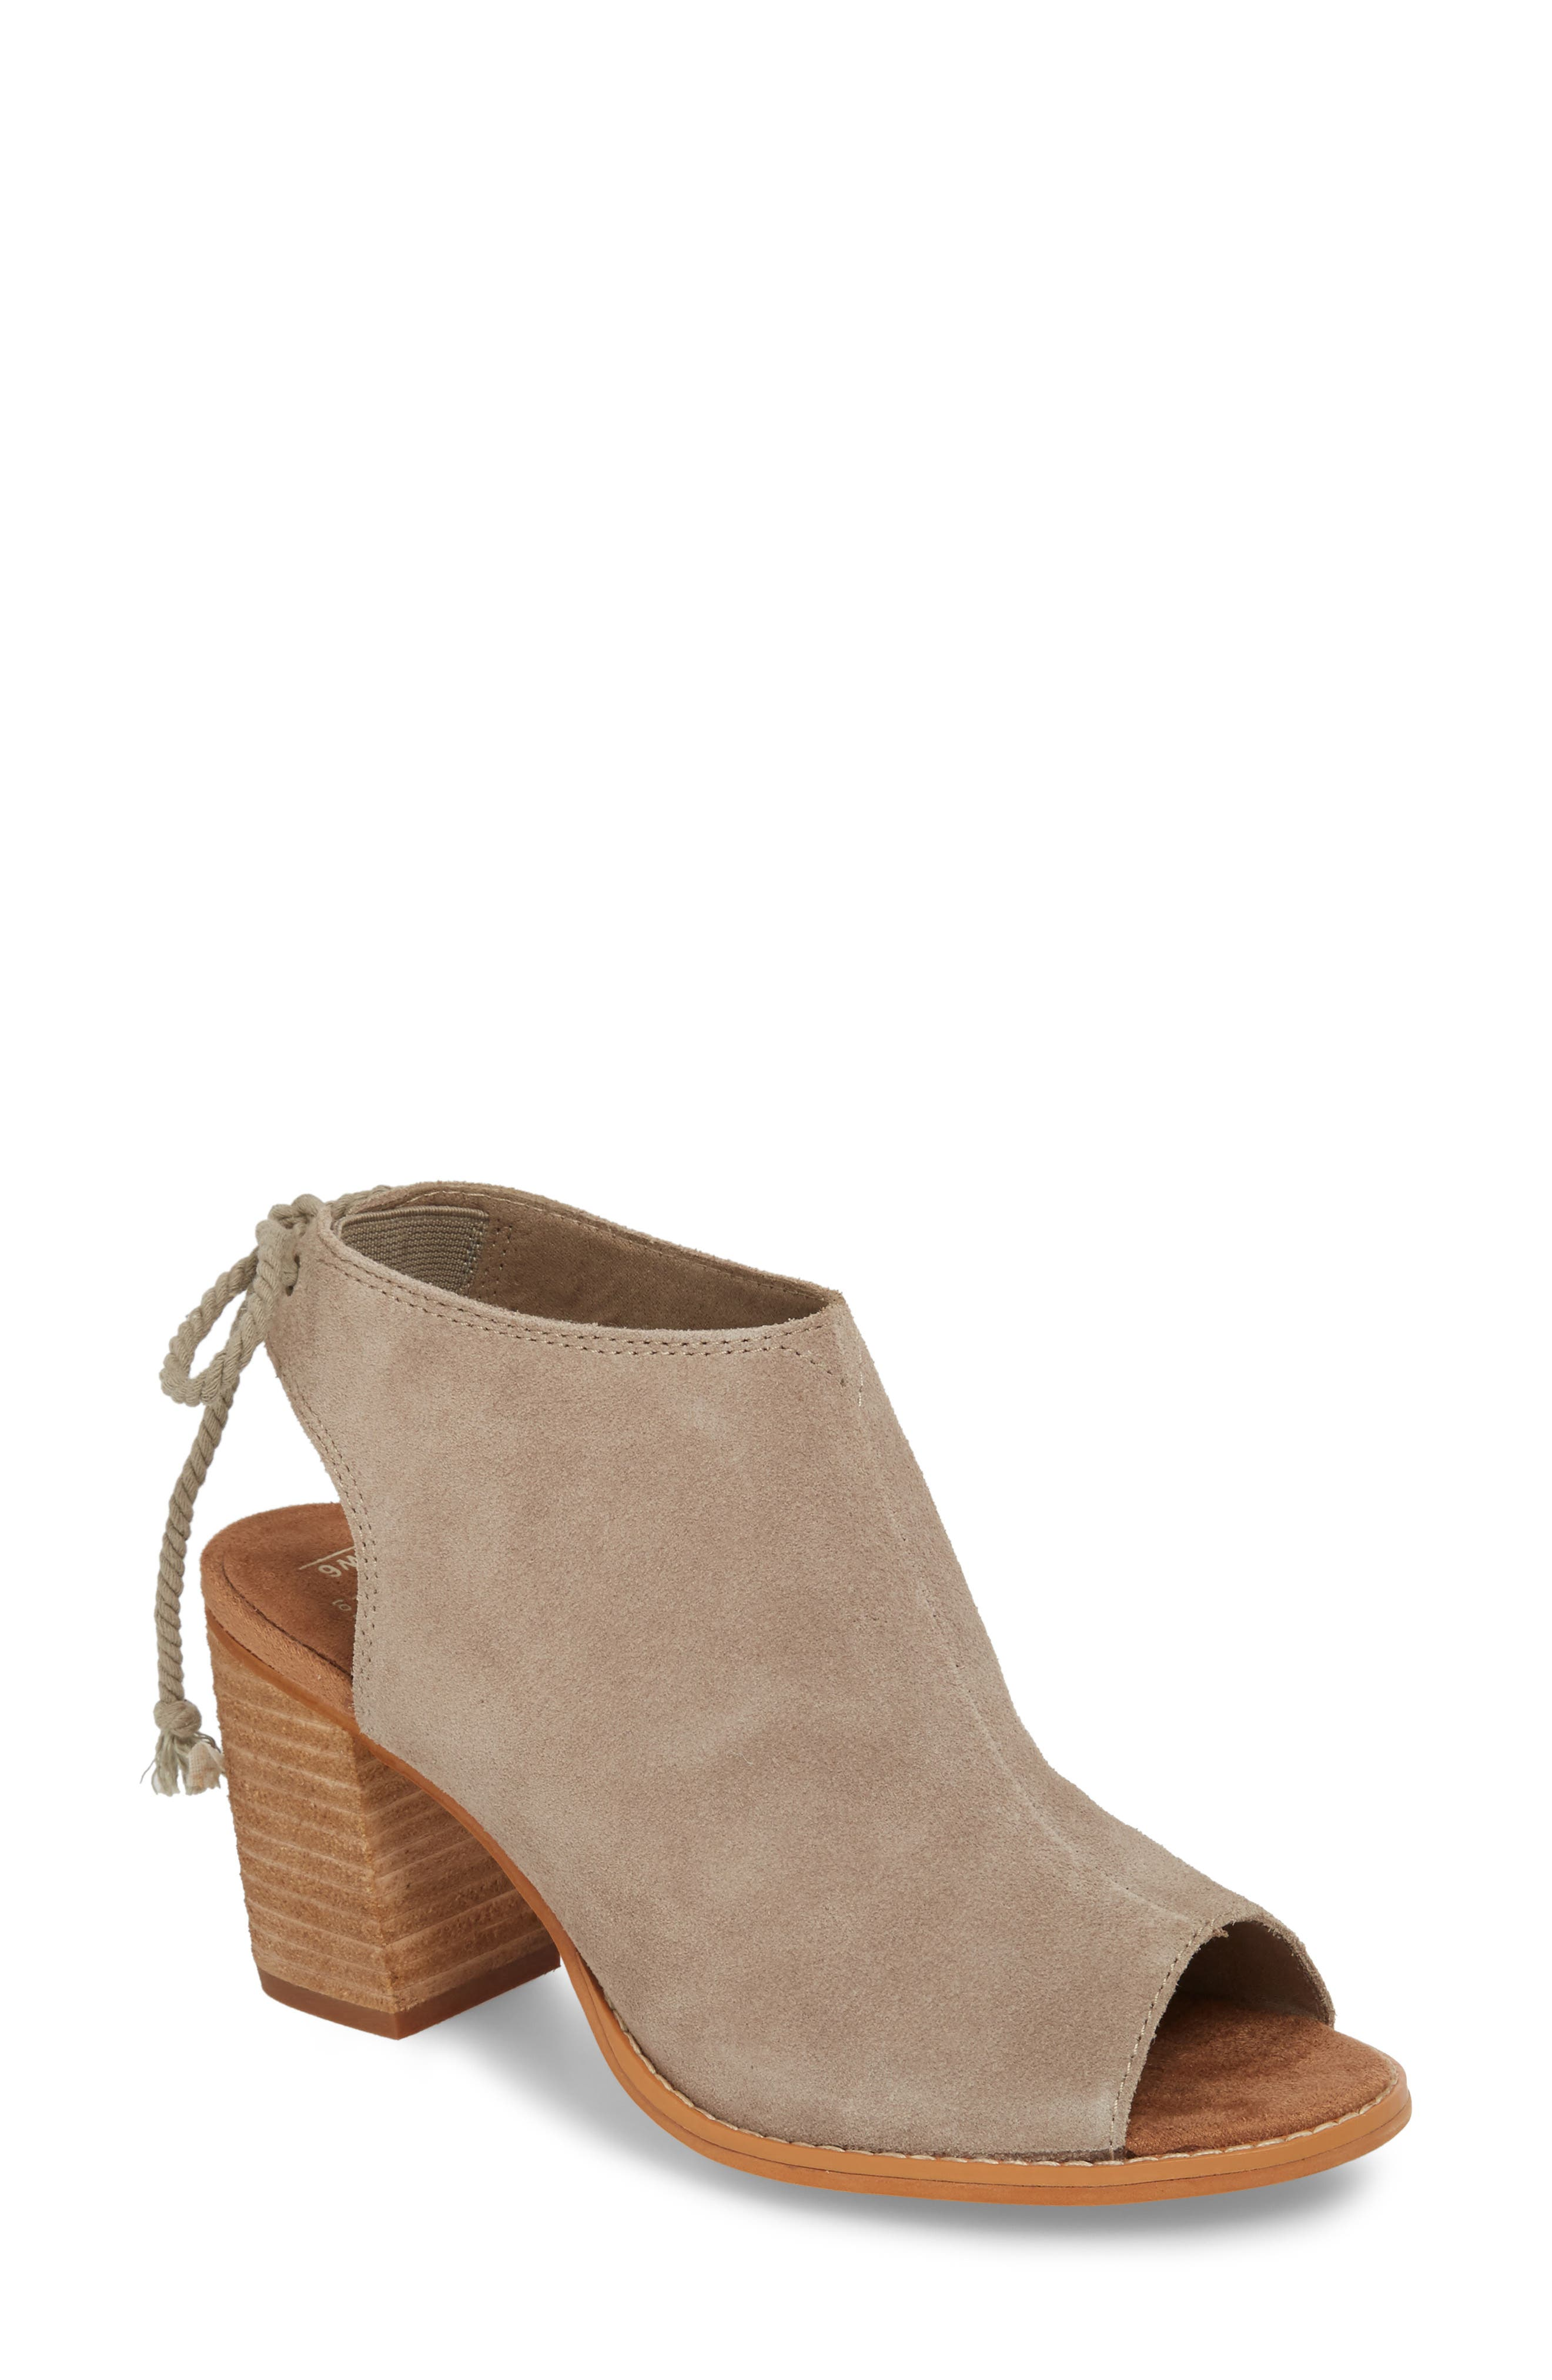 Alternate Image 1 Selected - TOMS Elba Peep-Toe Bootie (Women)